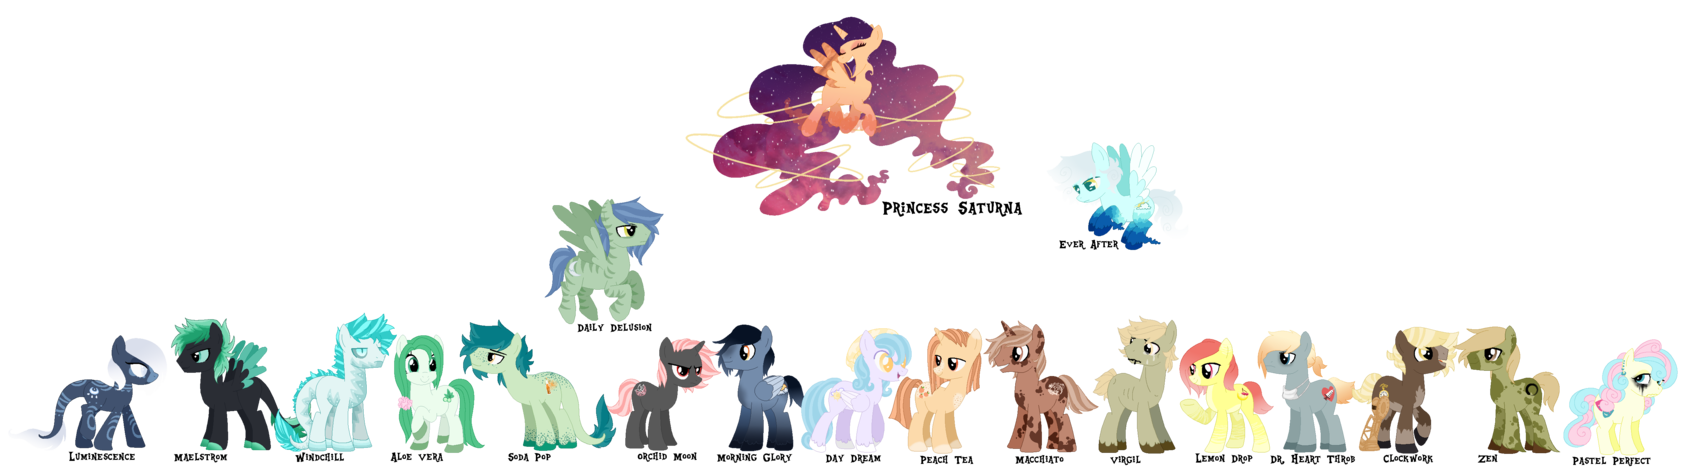 All of my pony. Dreams clipart day dreaming